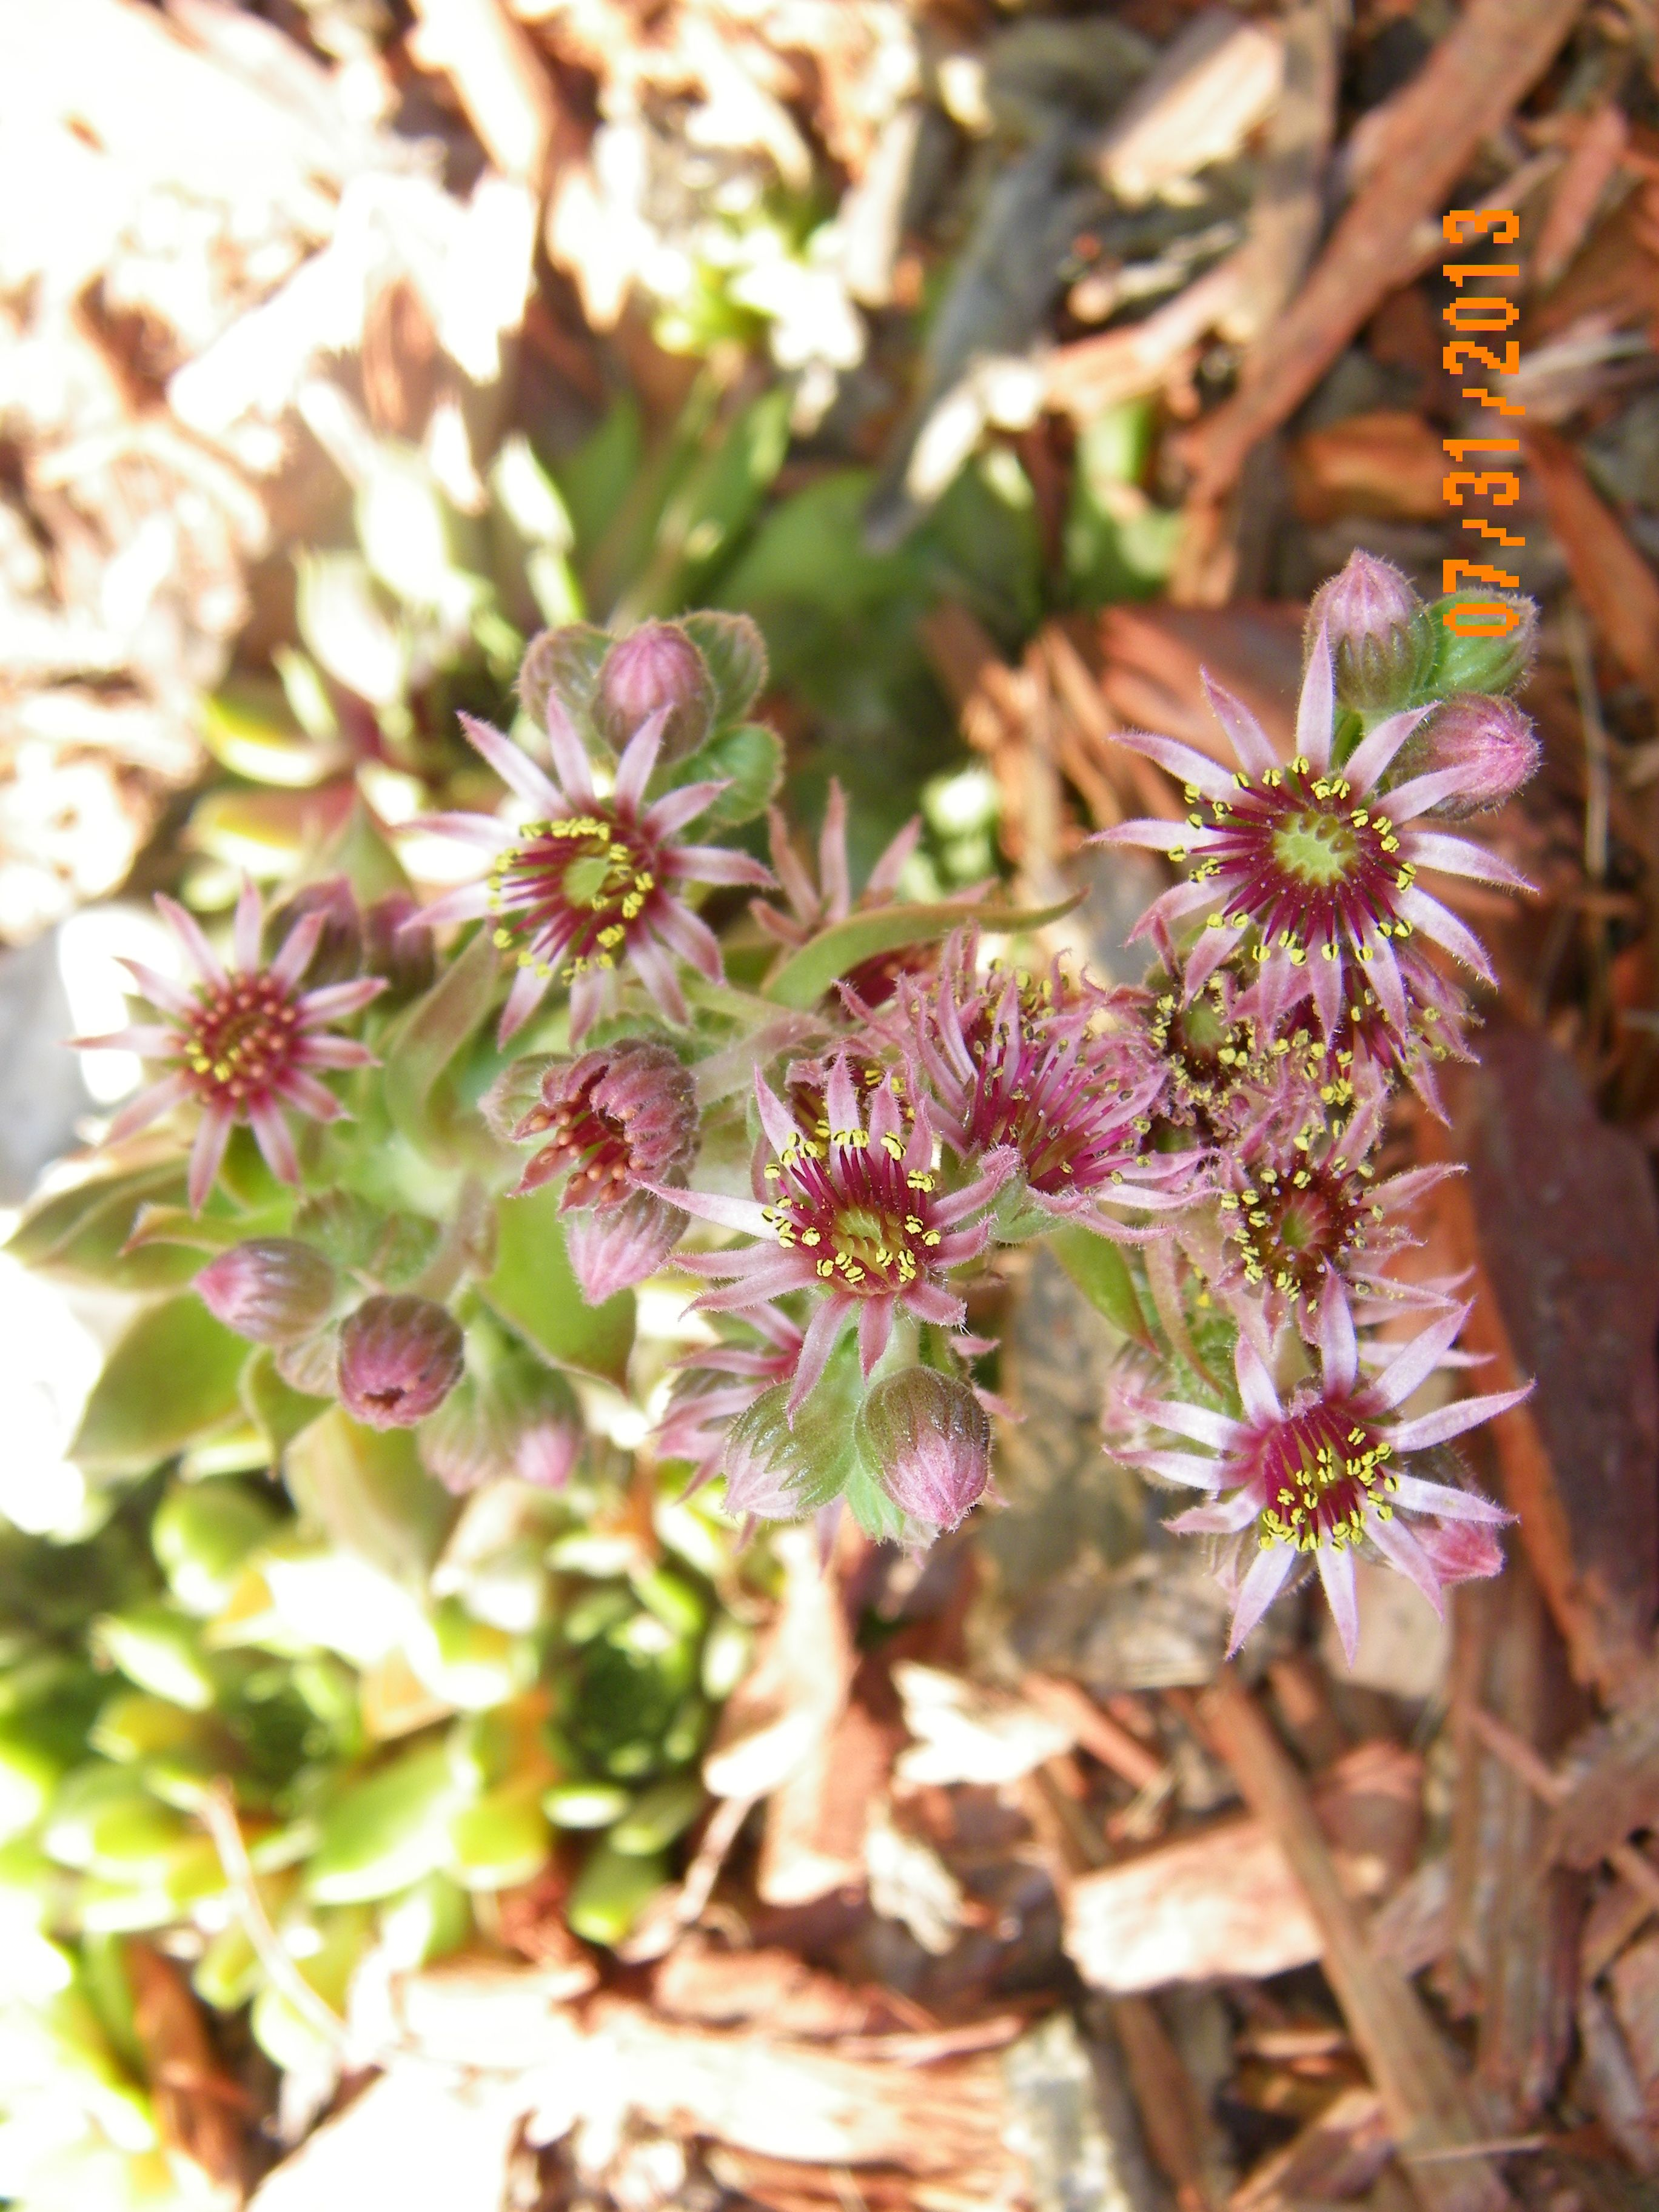 Hen chicks flowering hens and chicks flowers succulents